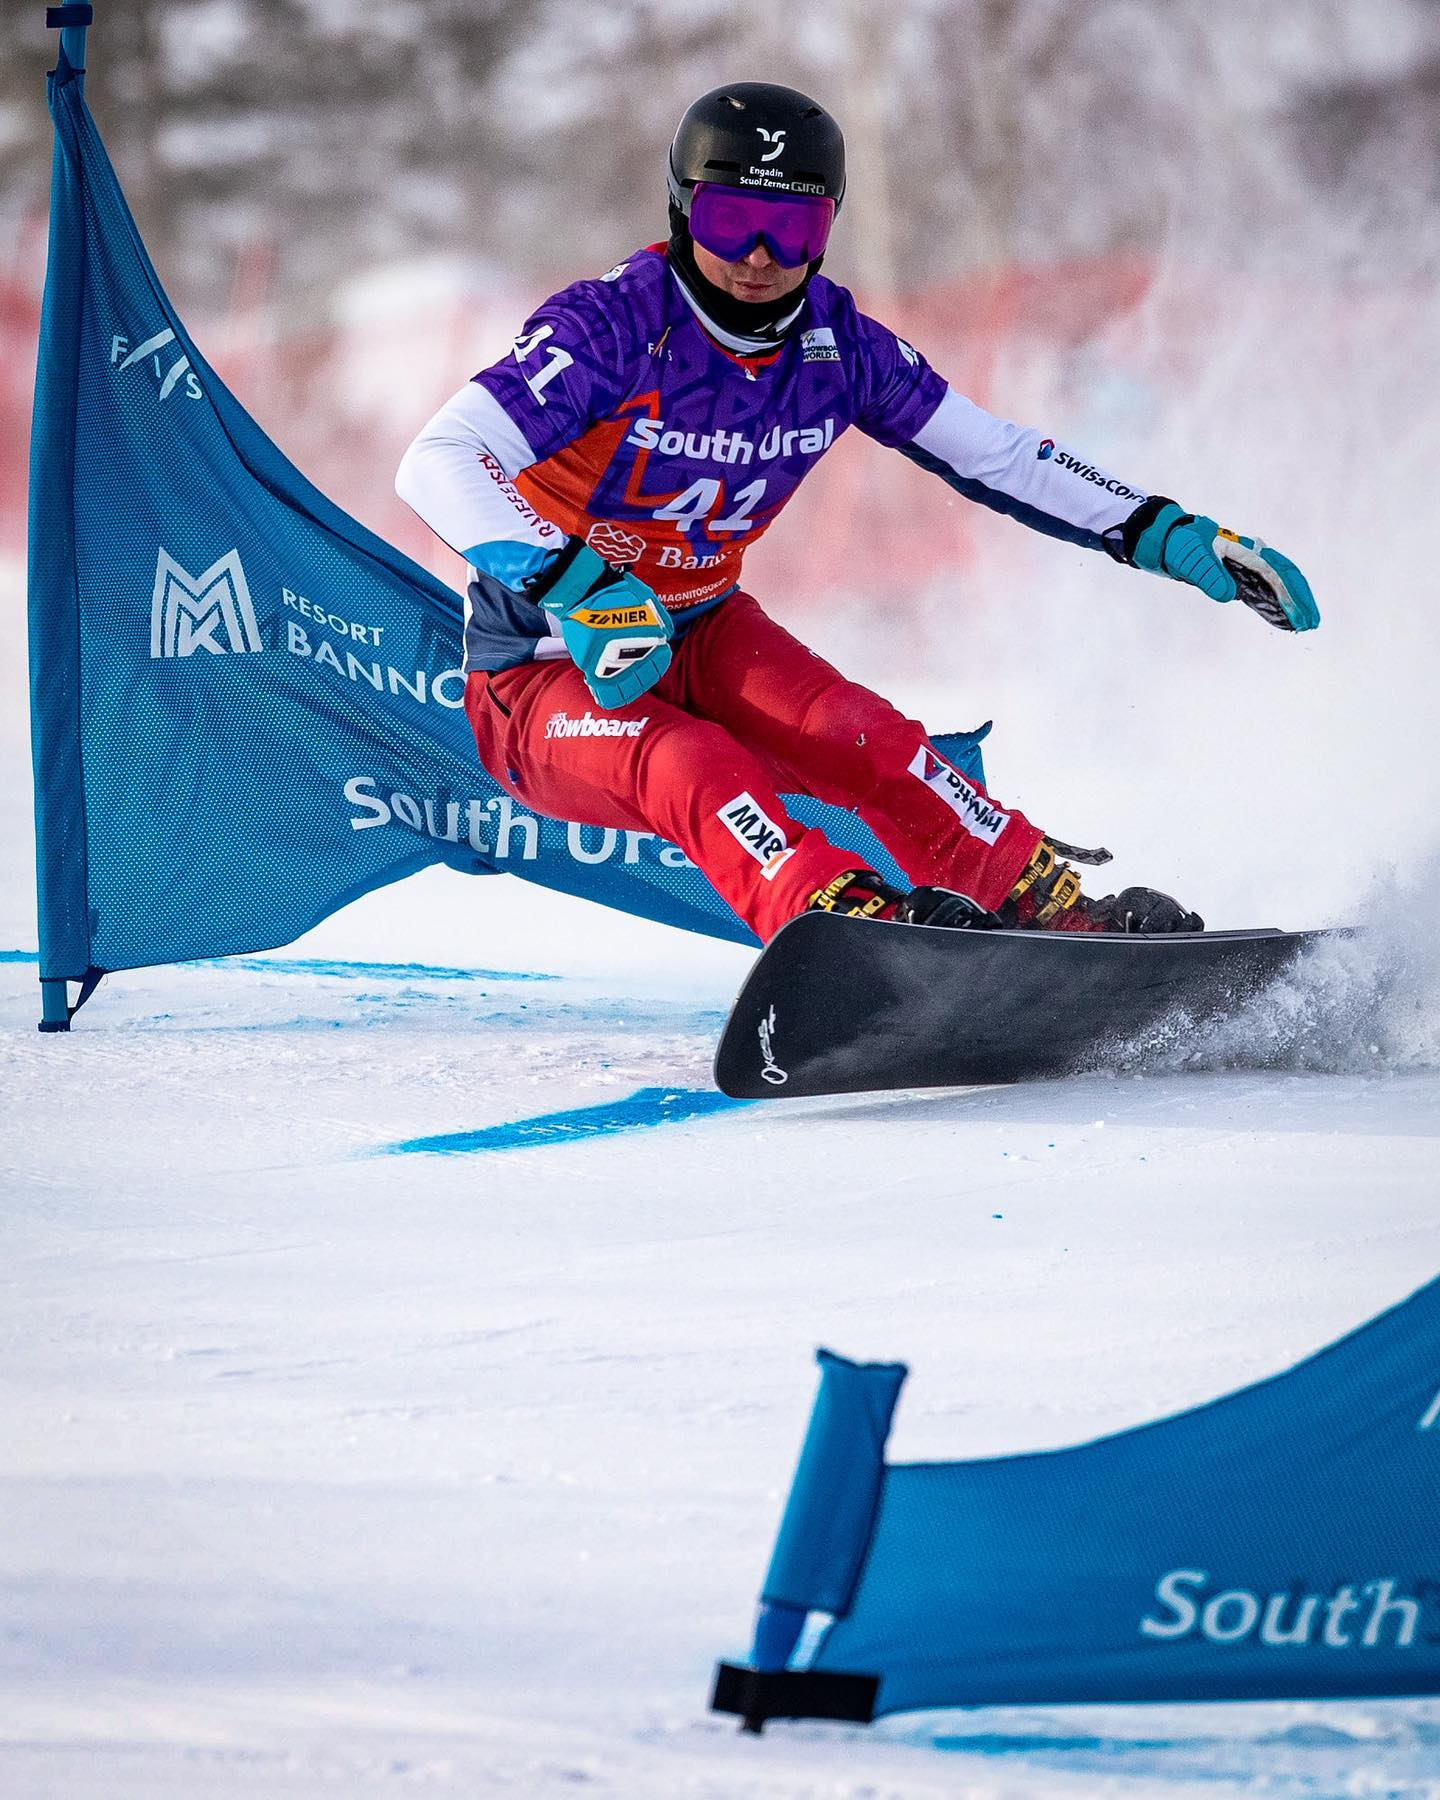 A tough week in Russia comes to an end. I crashed, I made mistakes but I also made some good turns here and there. Today's 16th place in the Slalom @fisworldcup_bannoye2021 was a step in the right direction though. I knew it's not gonna be a walk in the park to be back in the worldcup and I'm ready to continue the fight 🤘🏽 . . . . : @paveltabarchuk